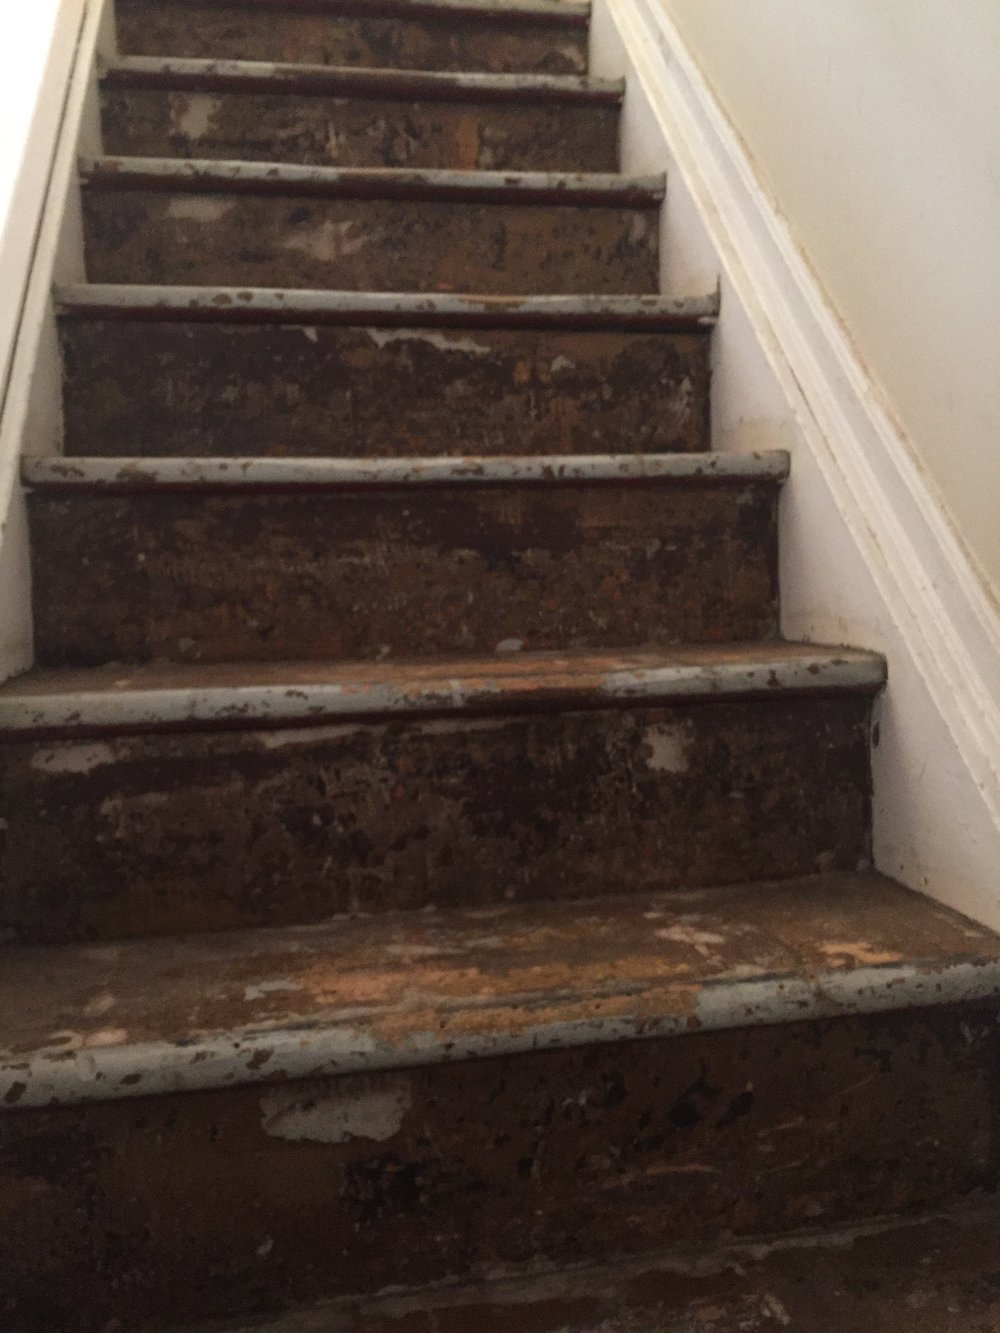 lesley-metcalfe-staircase-renovation-stairs-with-carpet-and-tiles-removed.JPG